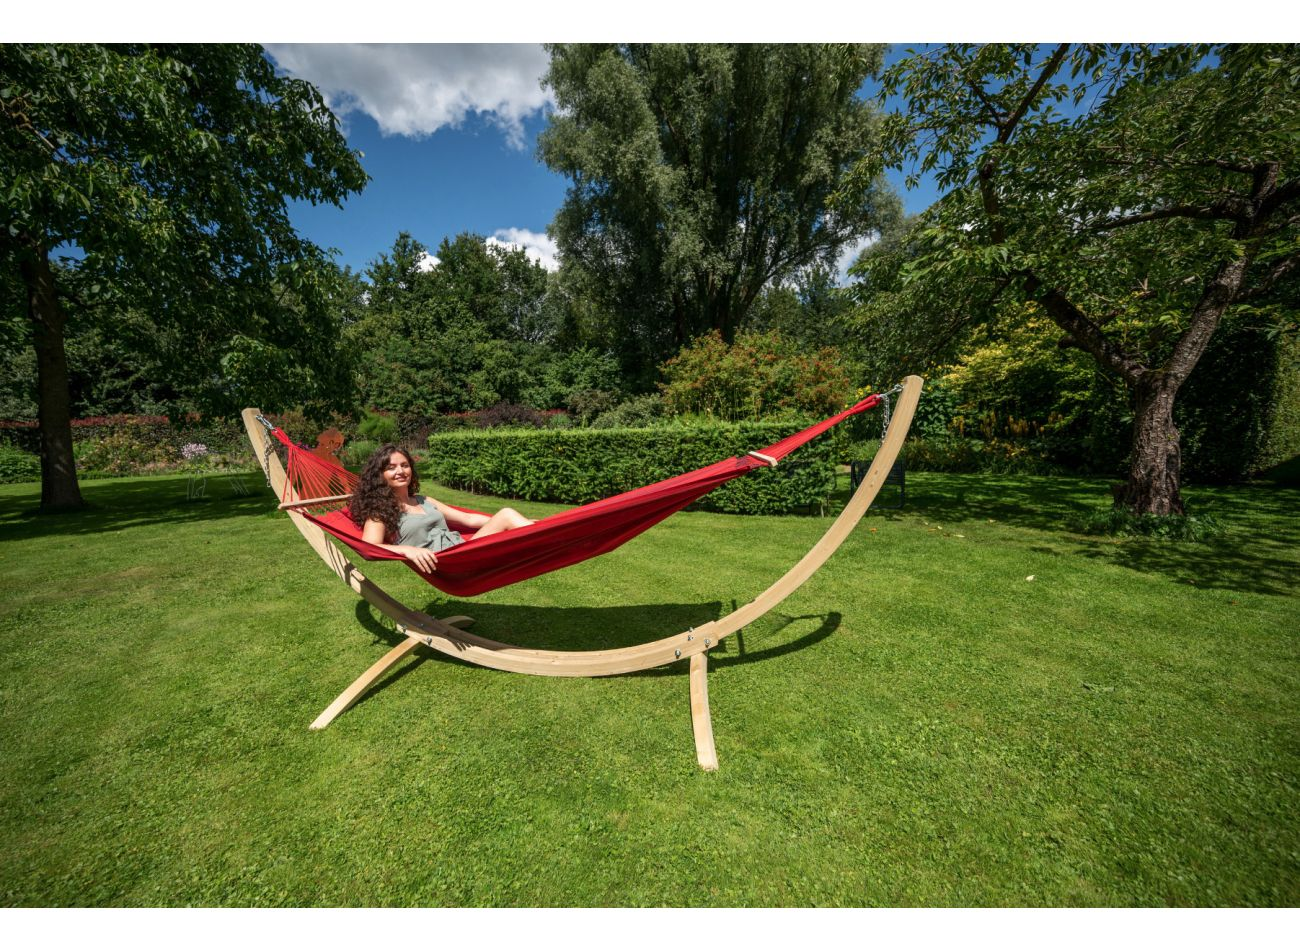 Hangmatset 1 Persoons Wood & Relax Red